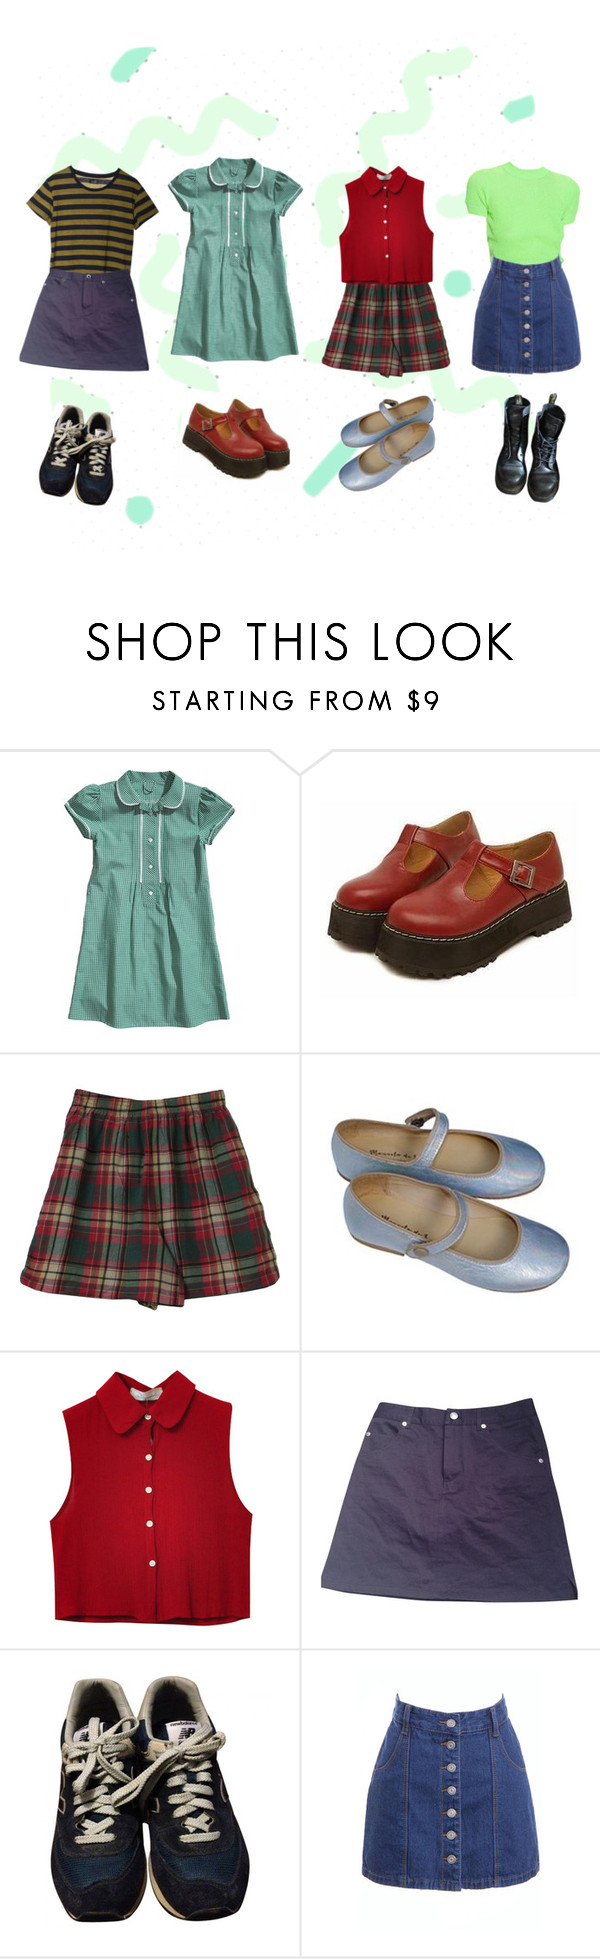 """""""Untitled #241"""" by paraparappa ❤ liked on Polyvore featuring Mancienne, Manuela de Juan, Cheap Monday, Chicnova Fashion, A.P.C., New Balance and Dr. Martens"""